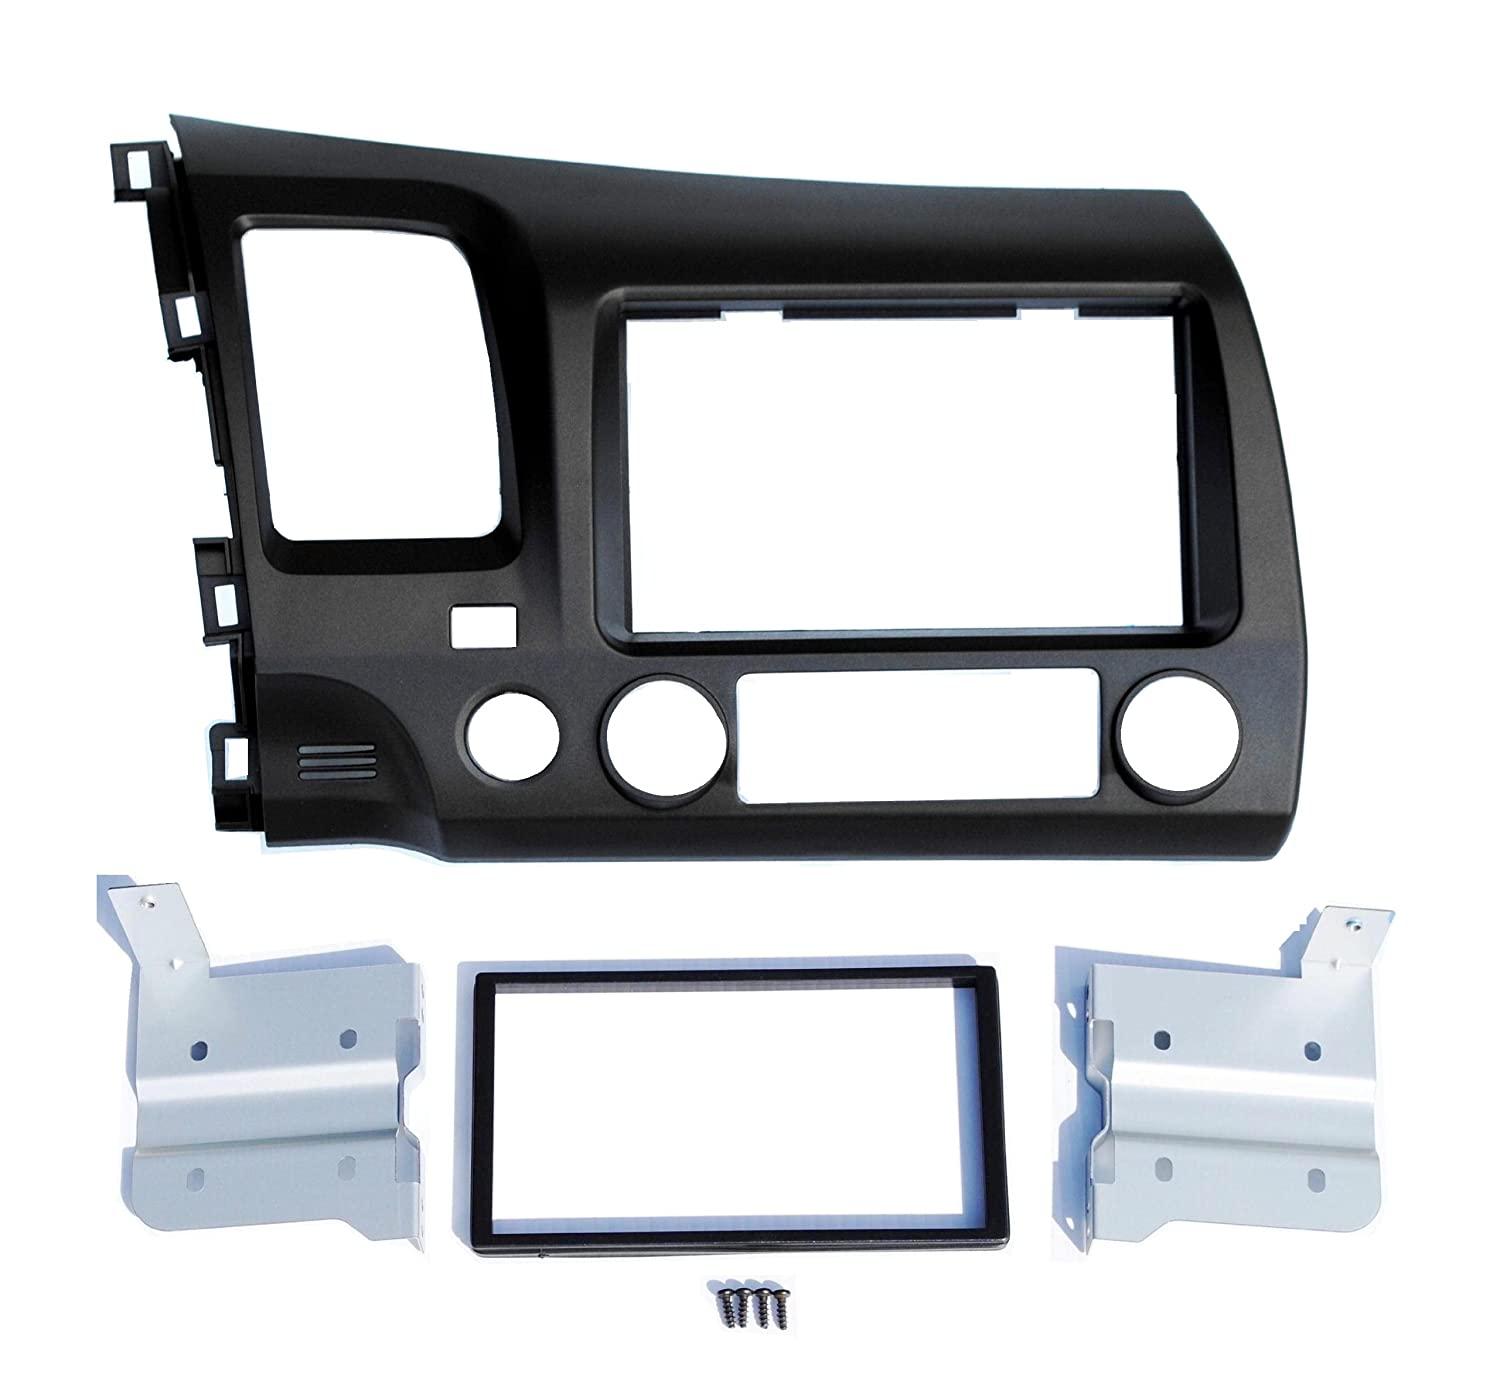 Earth Taupe Blue Aftermarket Double Din Installation Dash Kit Fits Honda Civic 2008-2011 Custom Install Parts